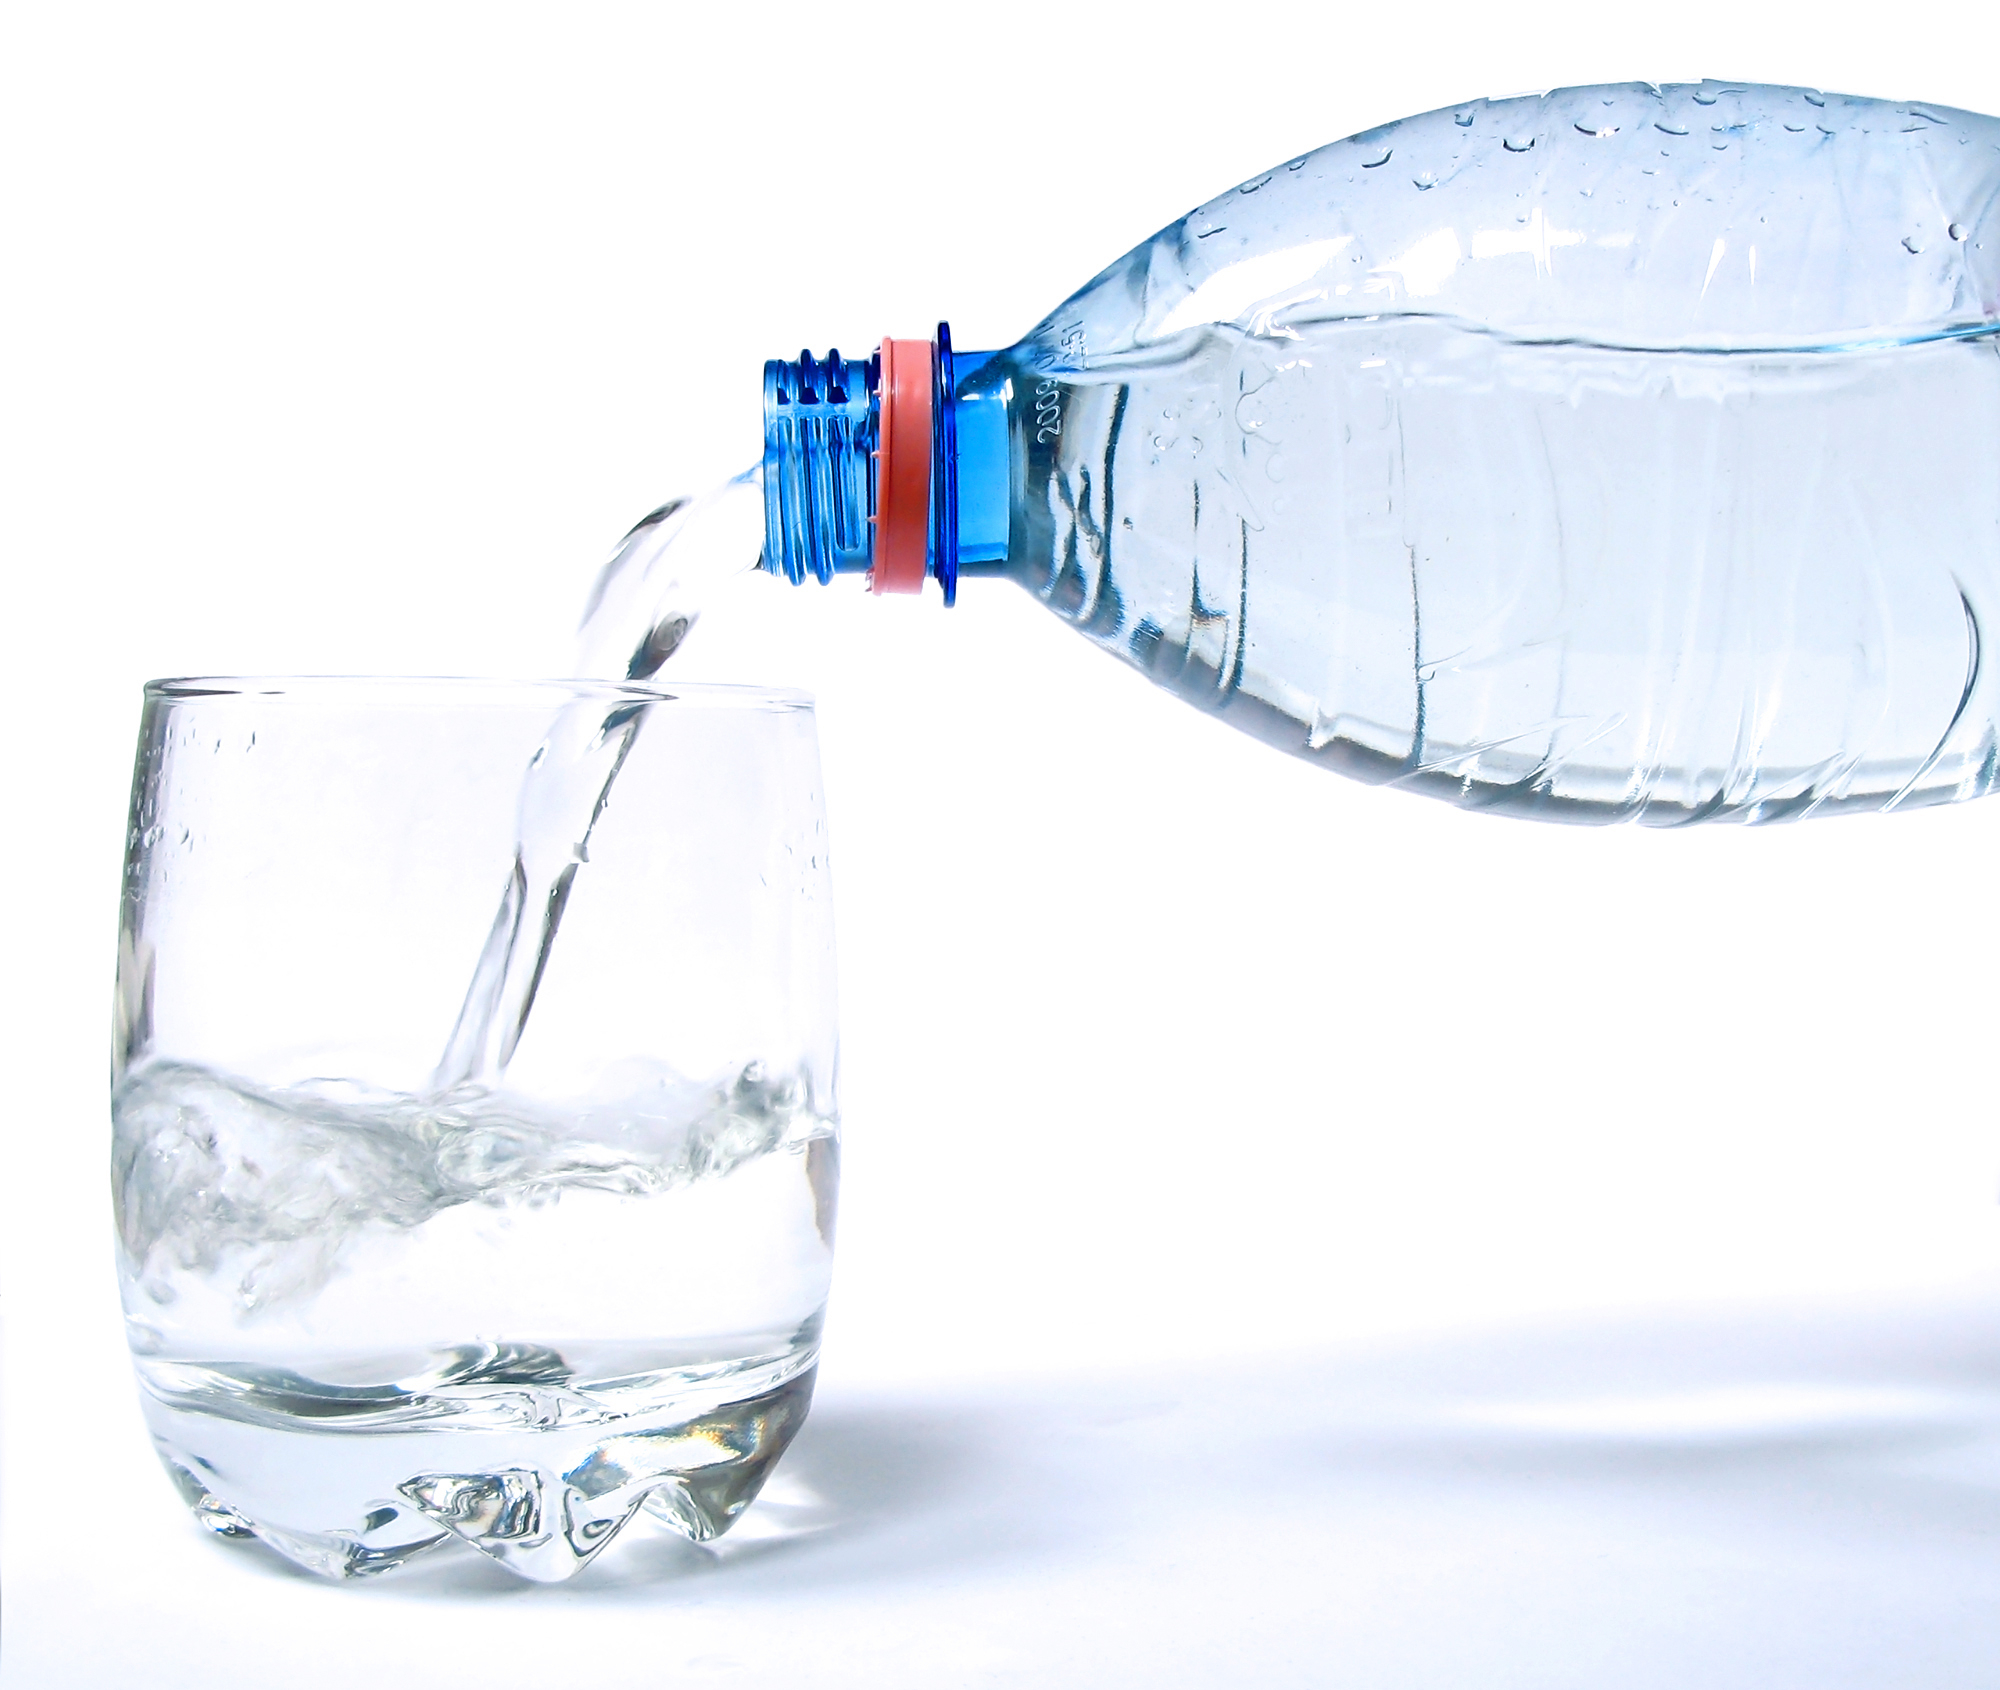 Bottled water under the microscope